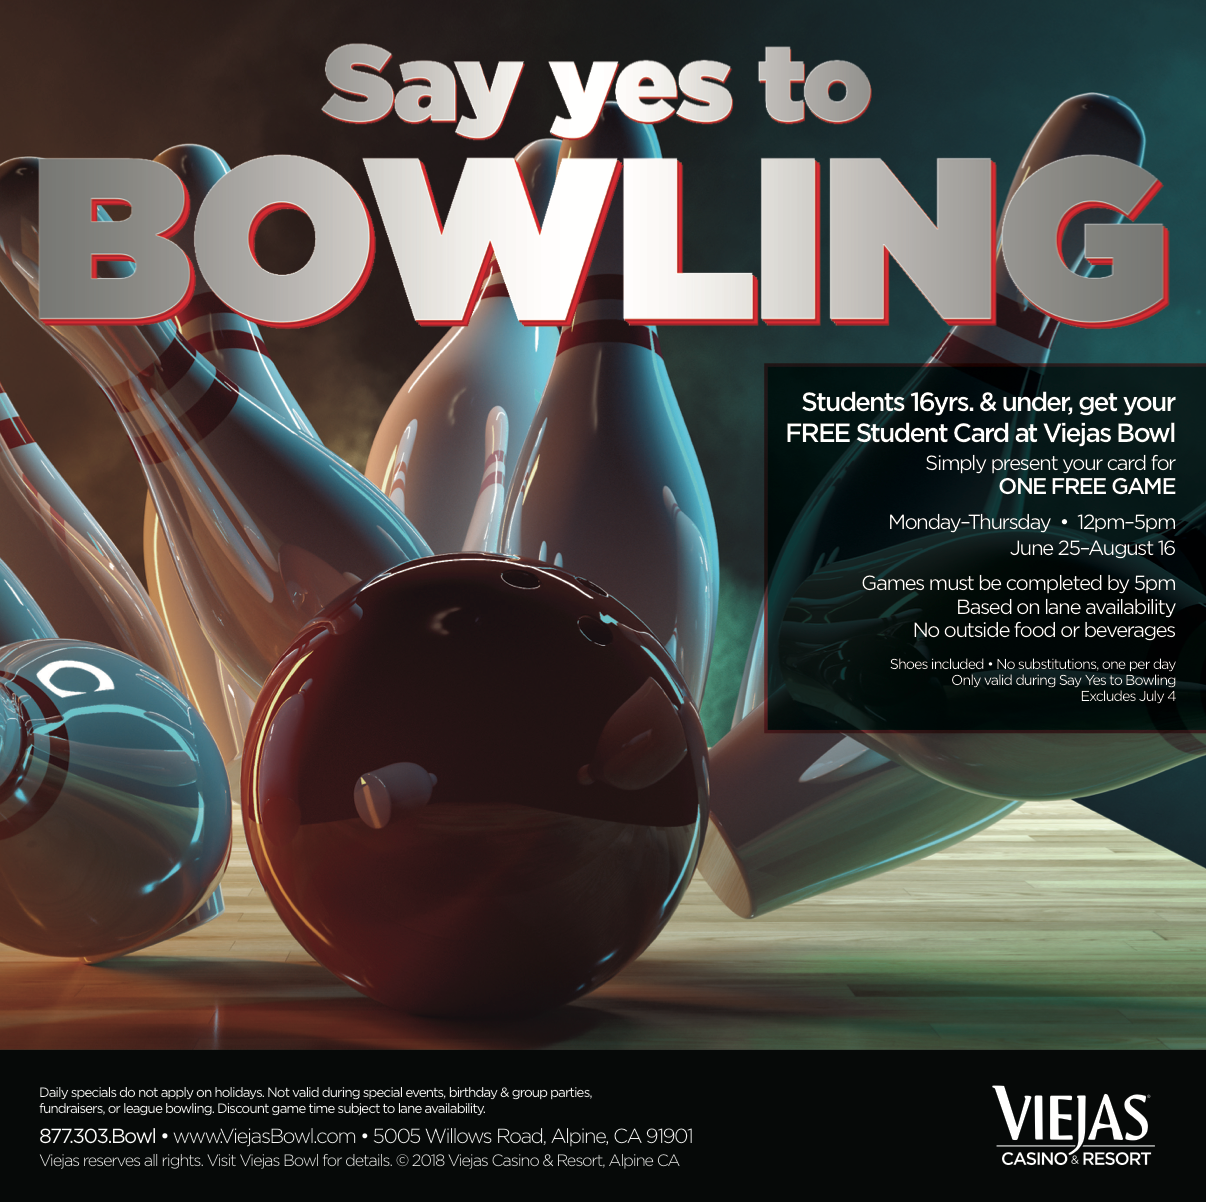 Viejas-Yes-to-Bowling-JPEG.png